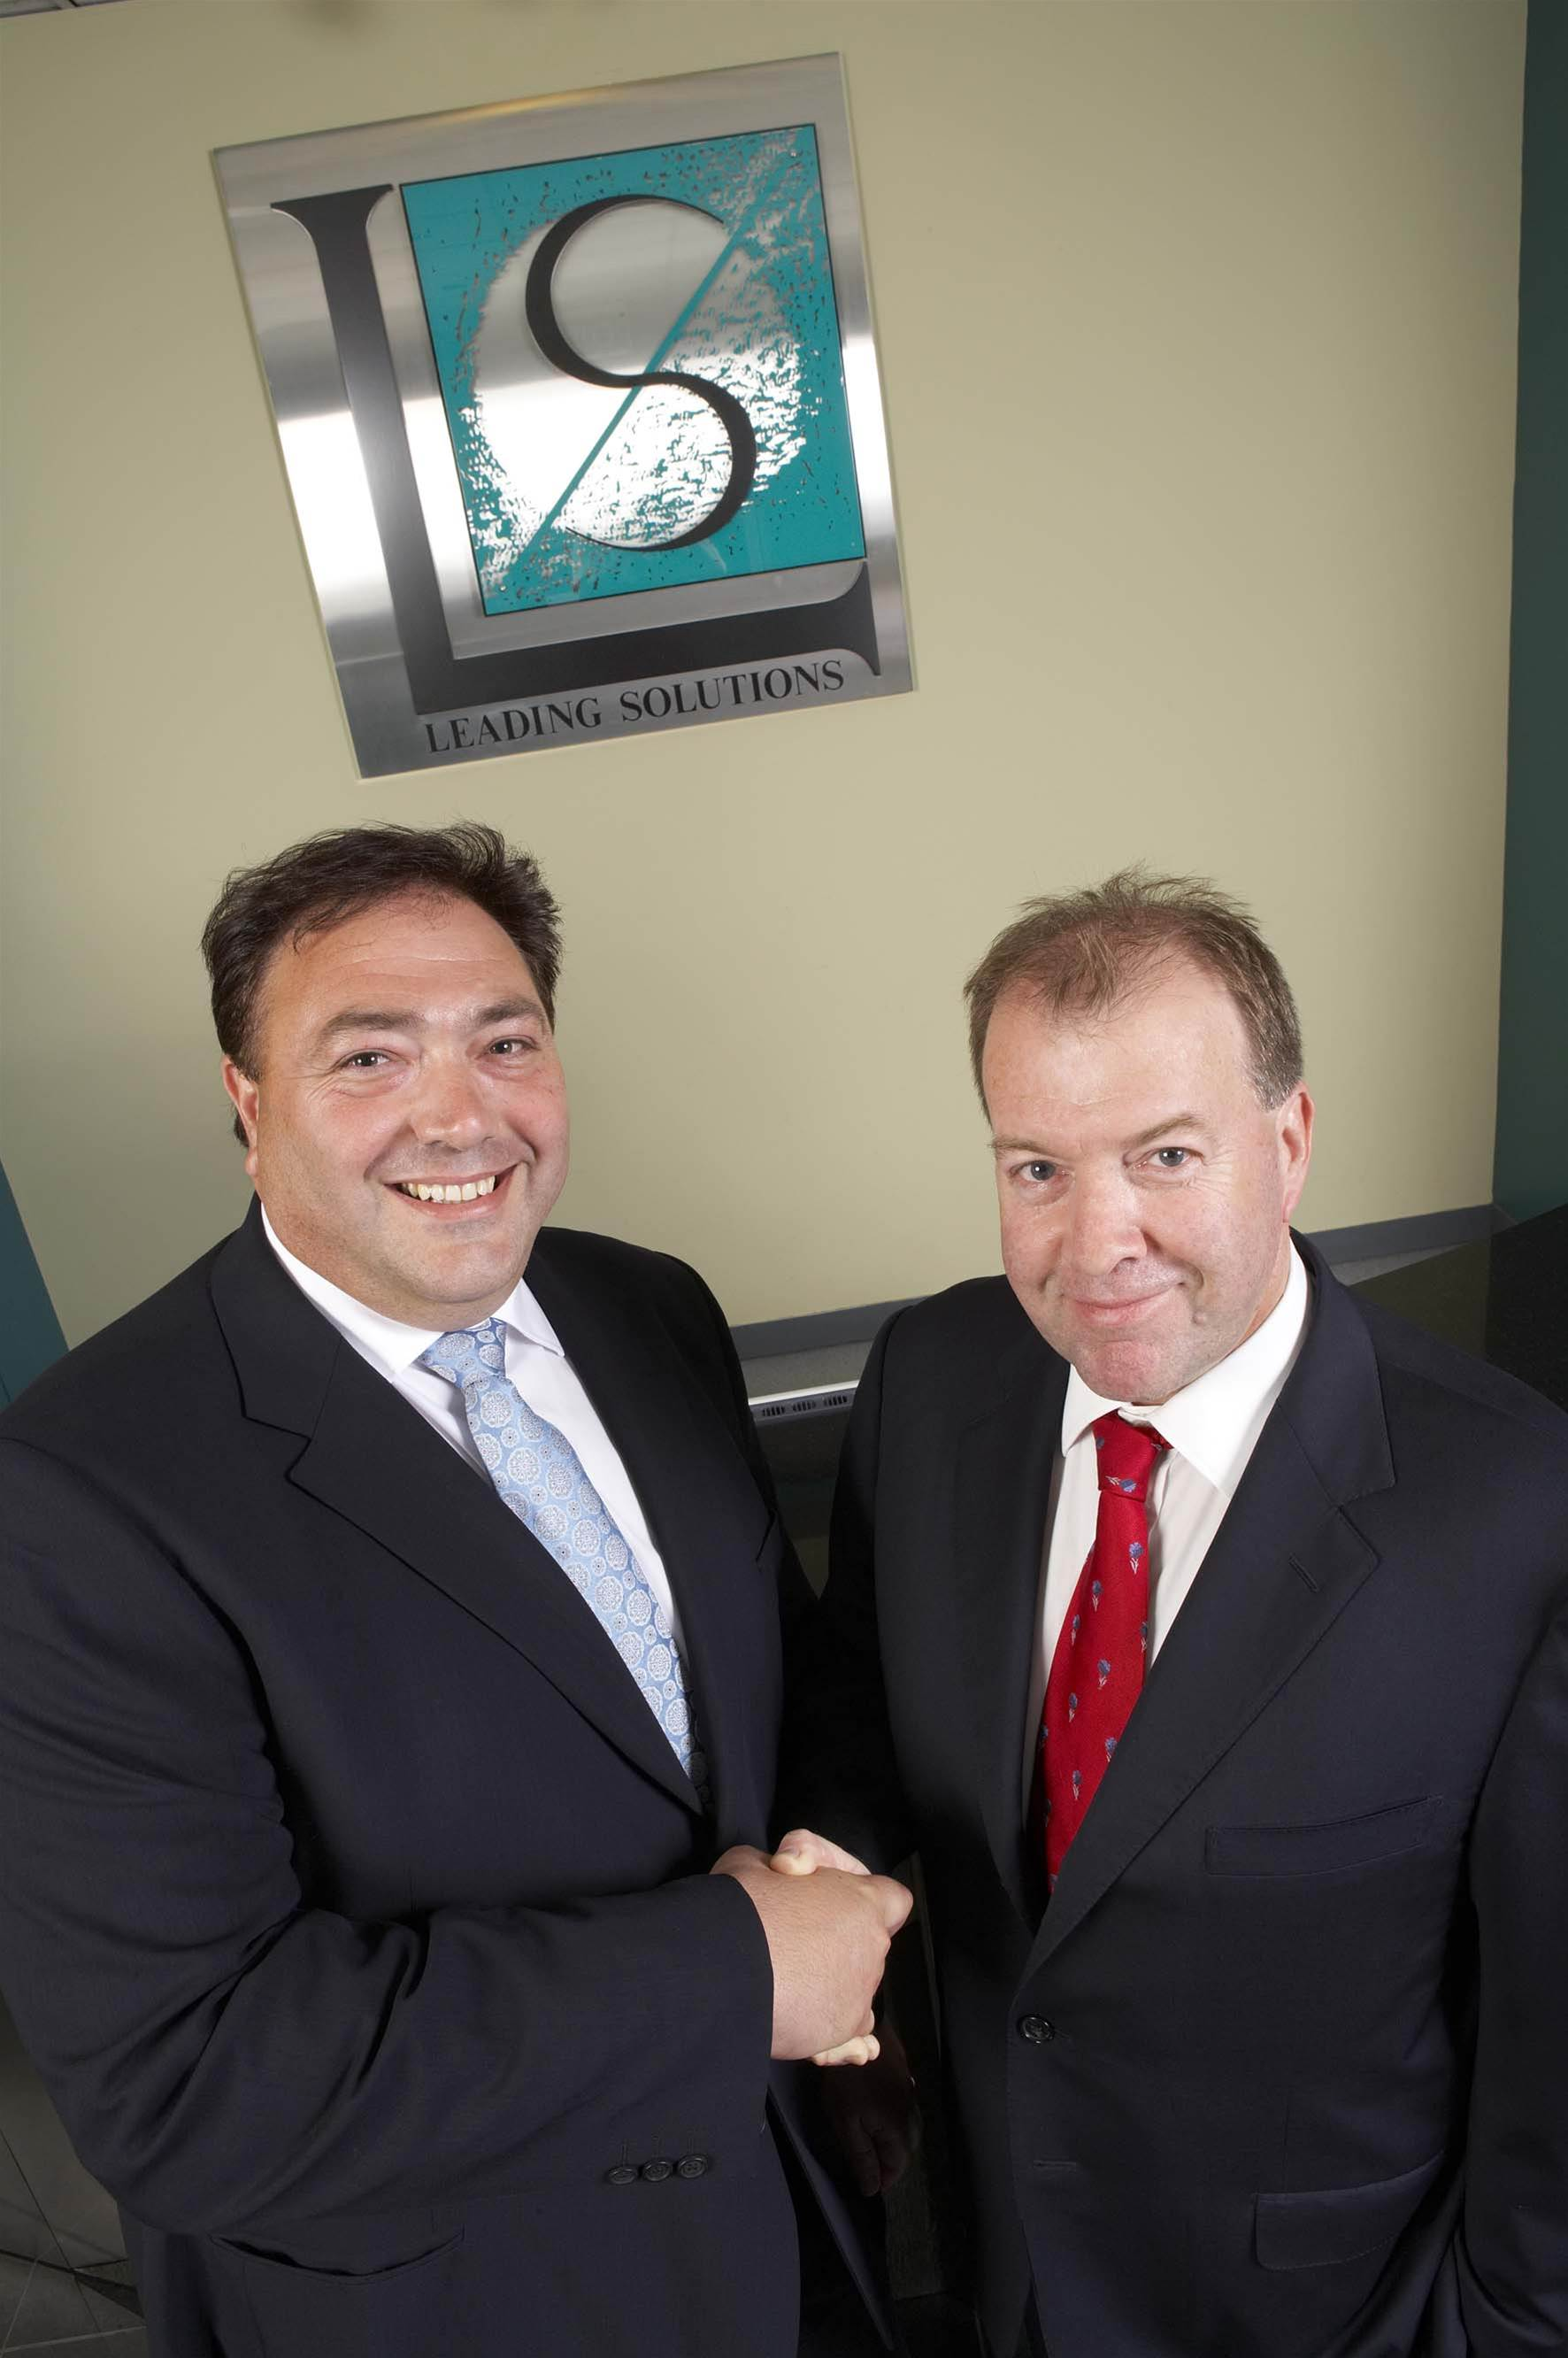 Leading Solutions buys up BCA IT